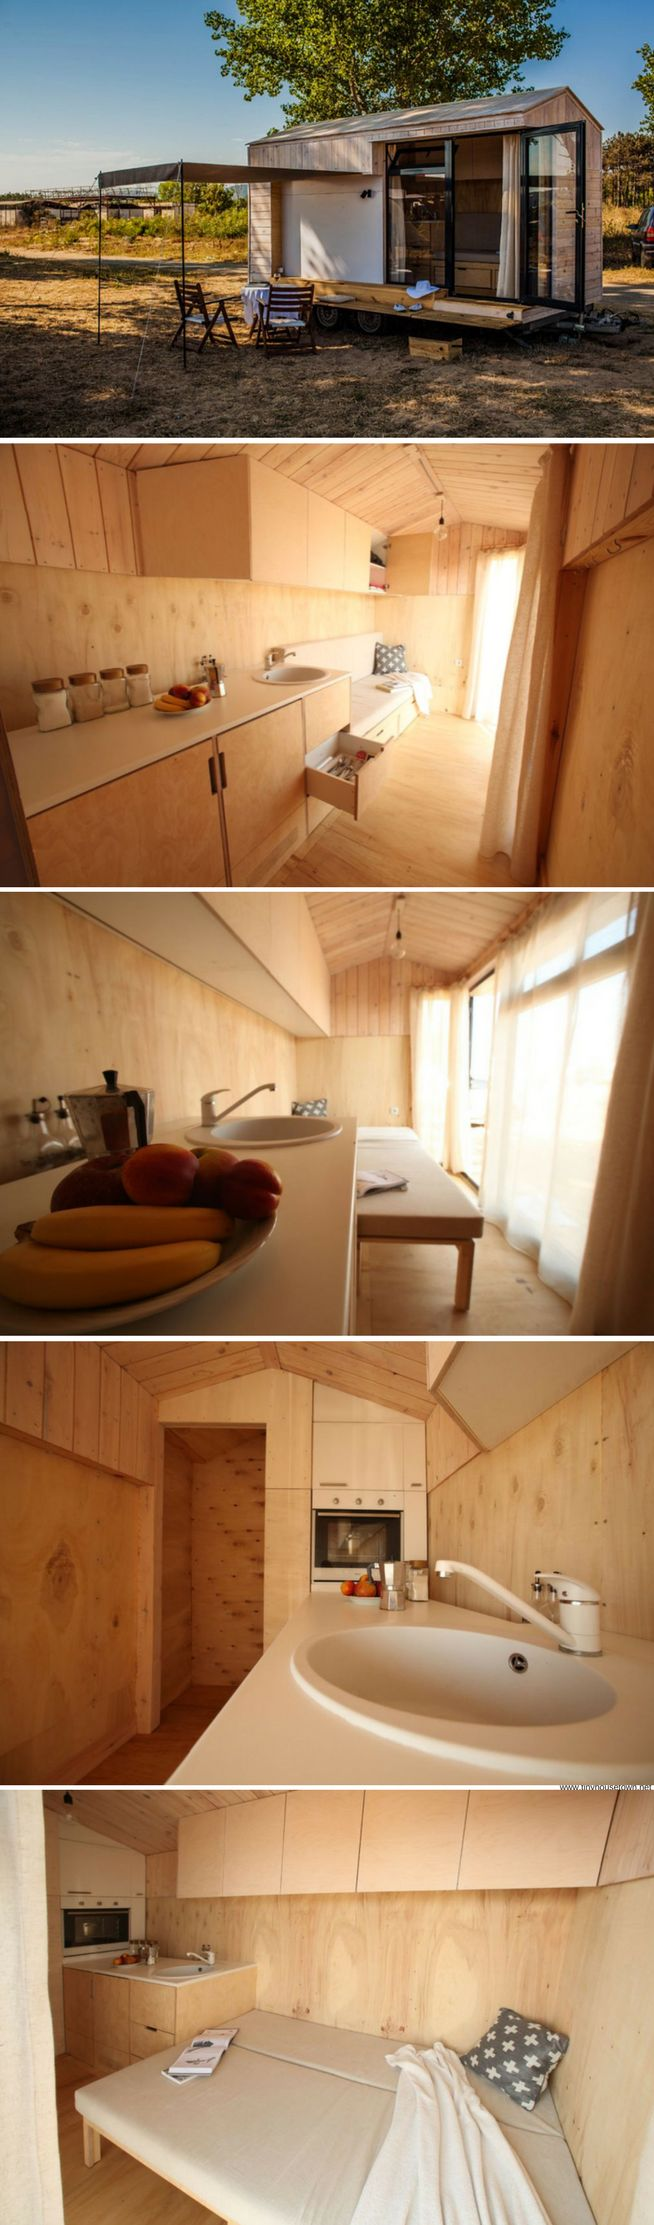 The Koleliba tiny house